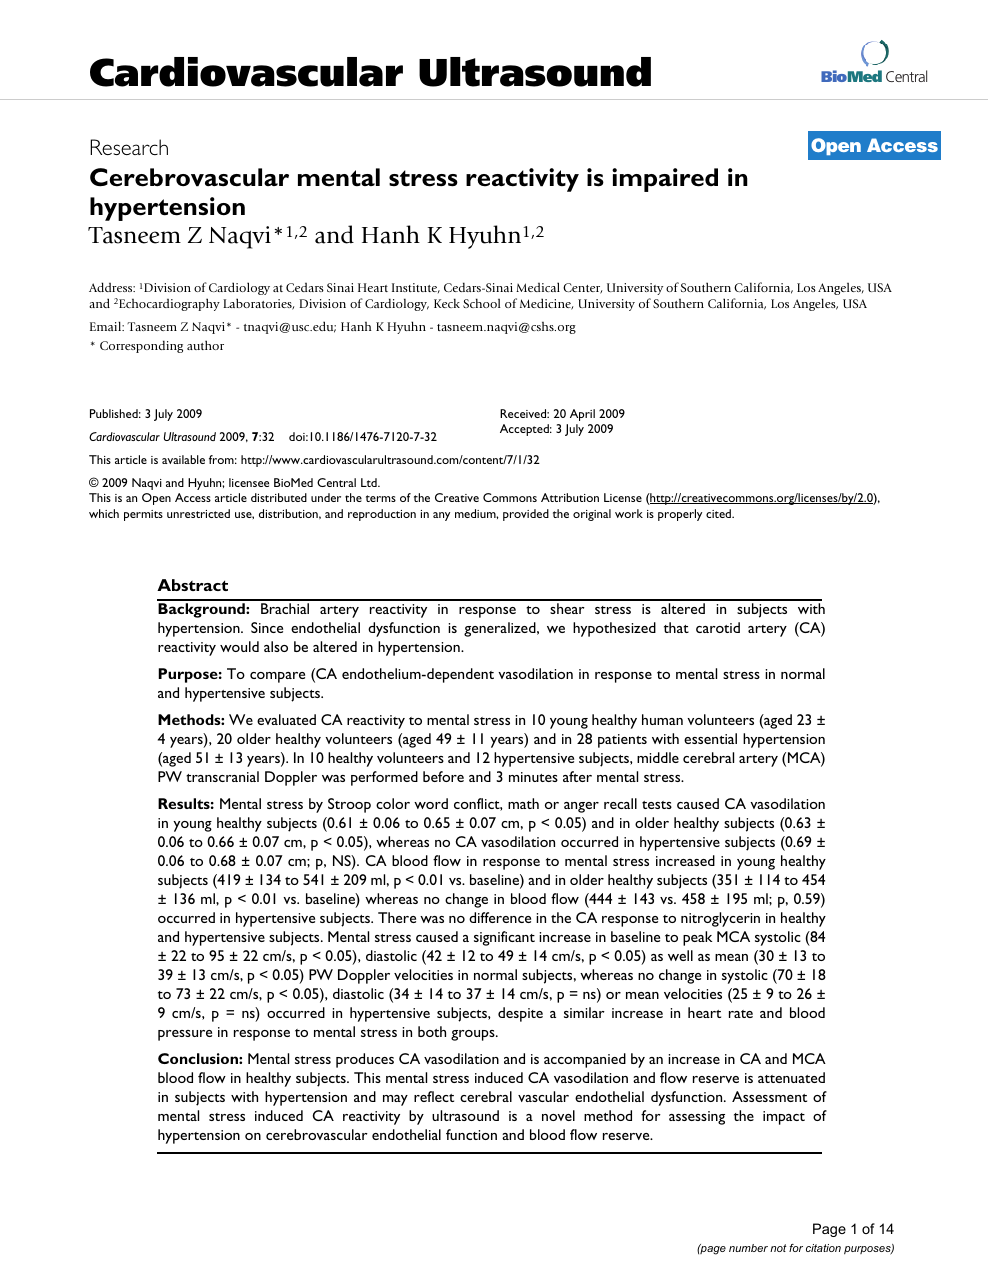 Cerebrovascular mental stress reactivity is impaired in